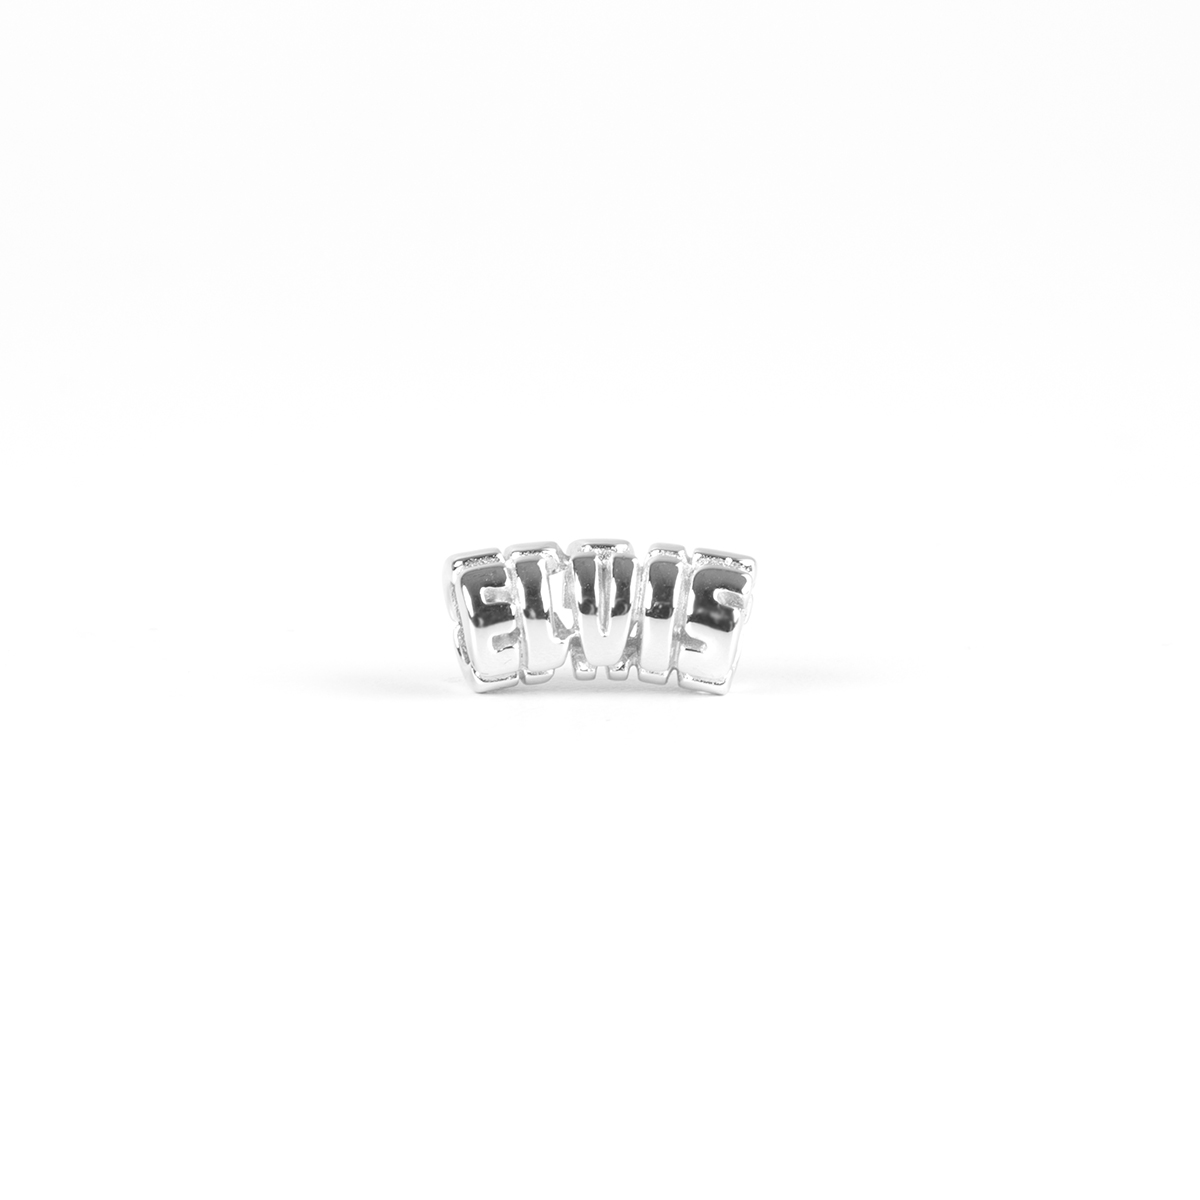 Elvis Silver Charm - Letters Curved Bead